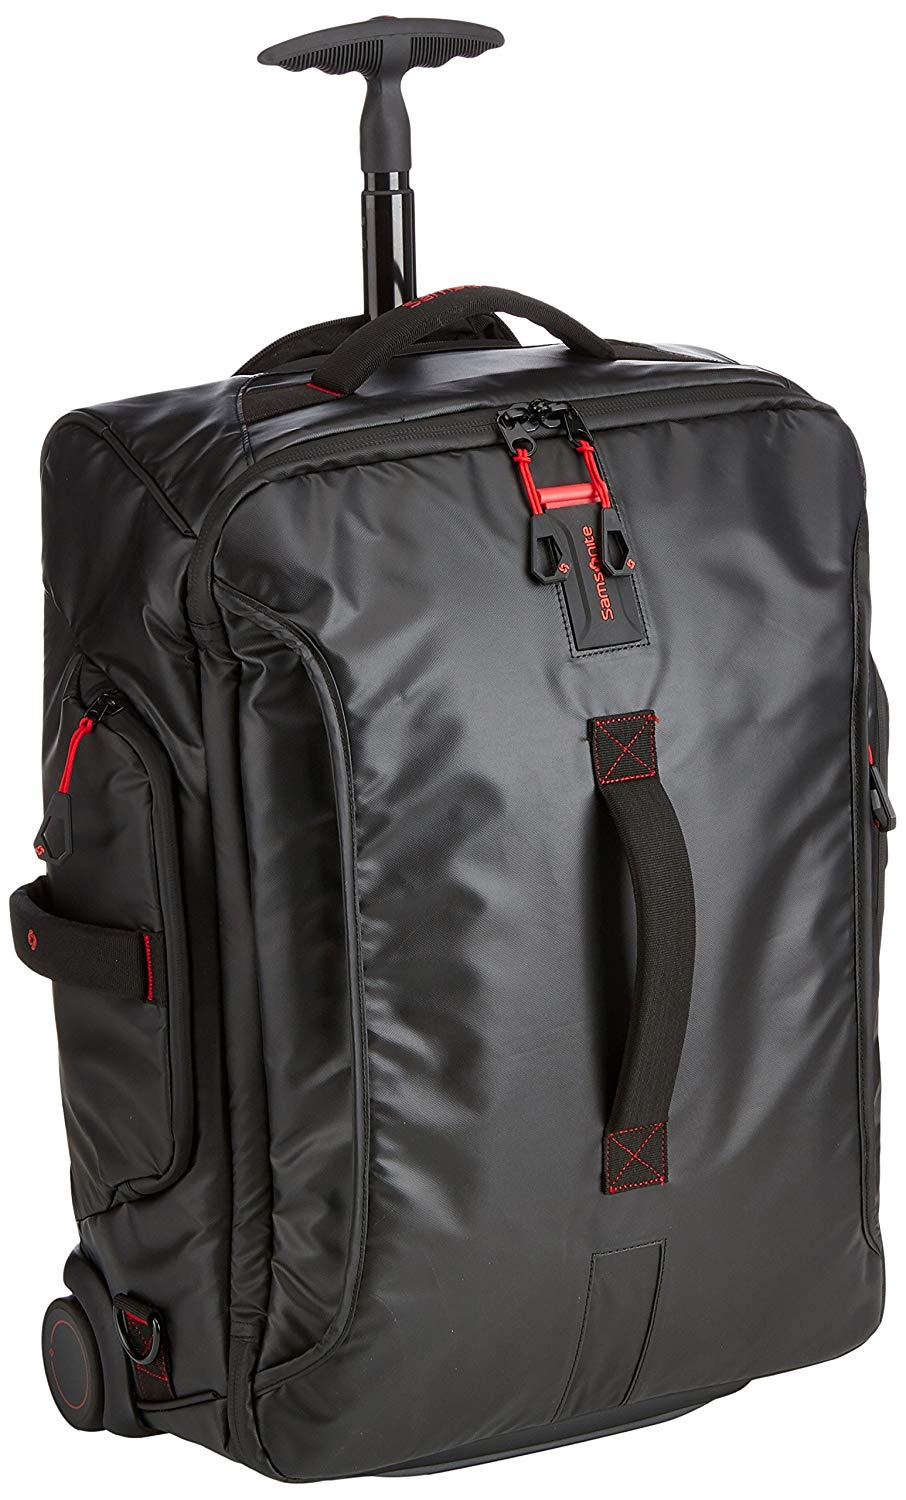 https://shop.samsonite.com/